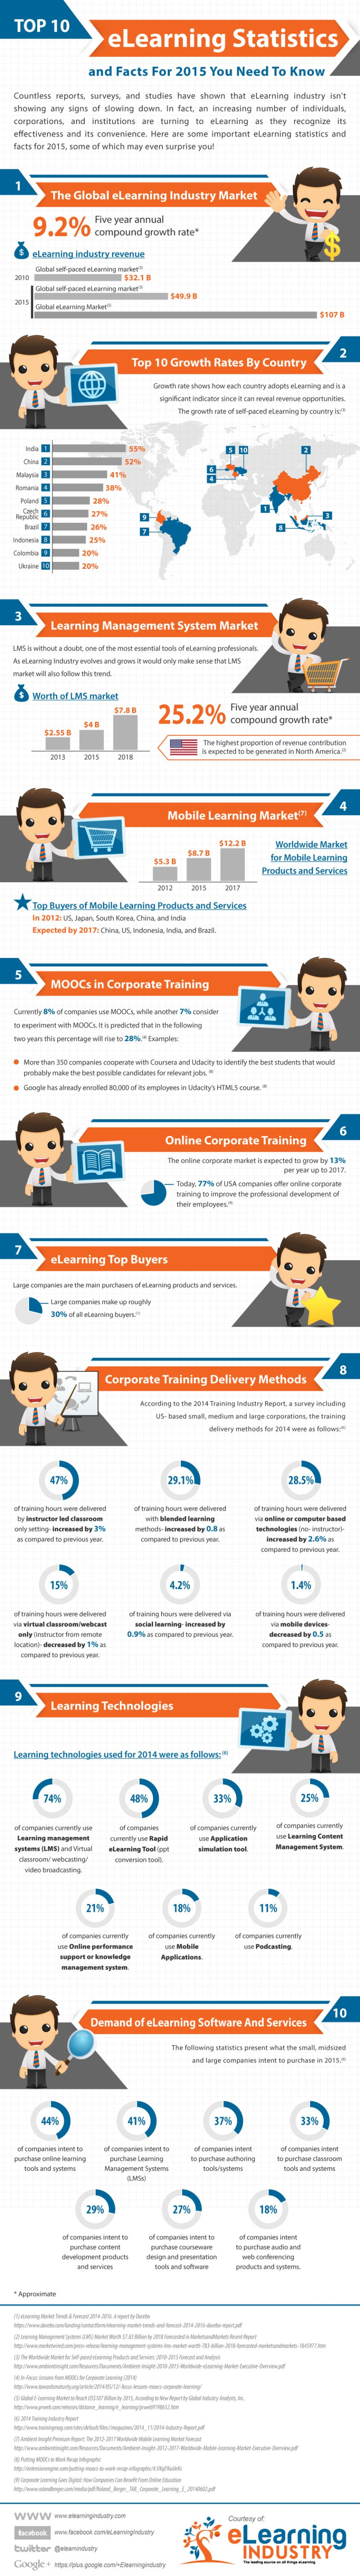 20150123-Top 10 eLearning Stats for 2015